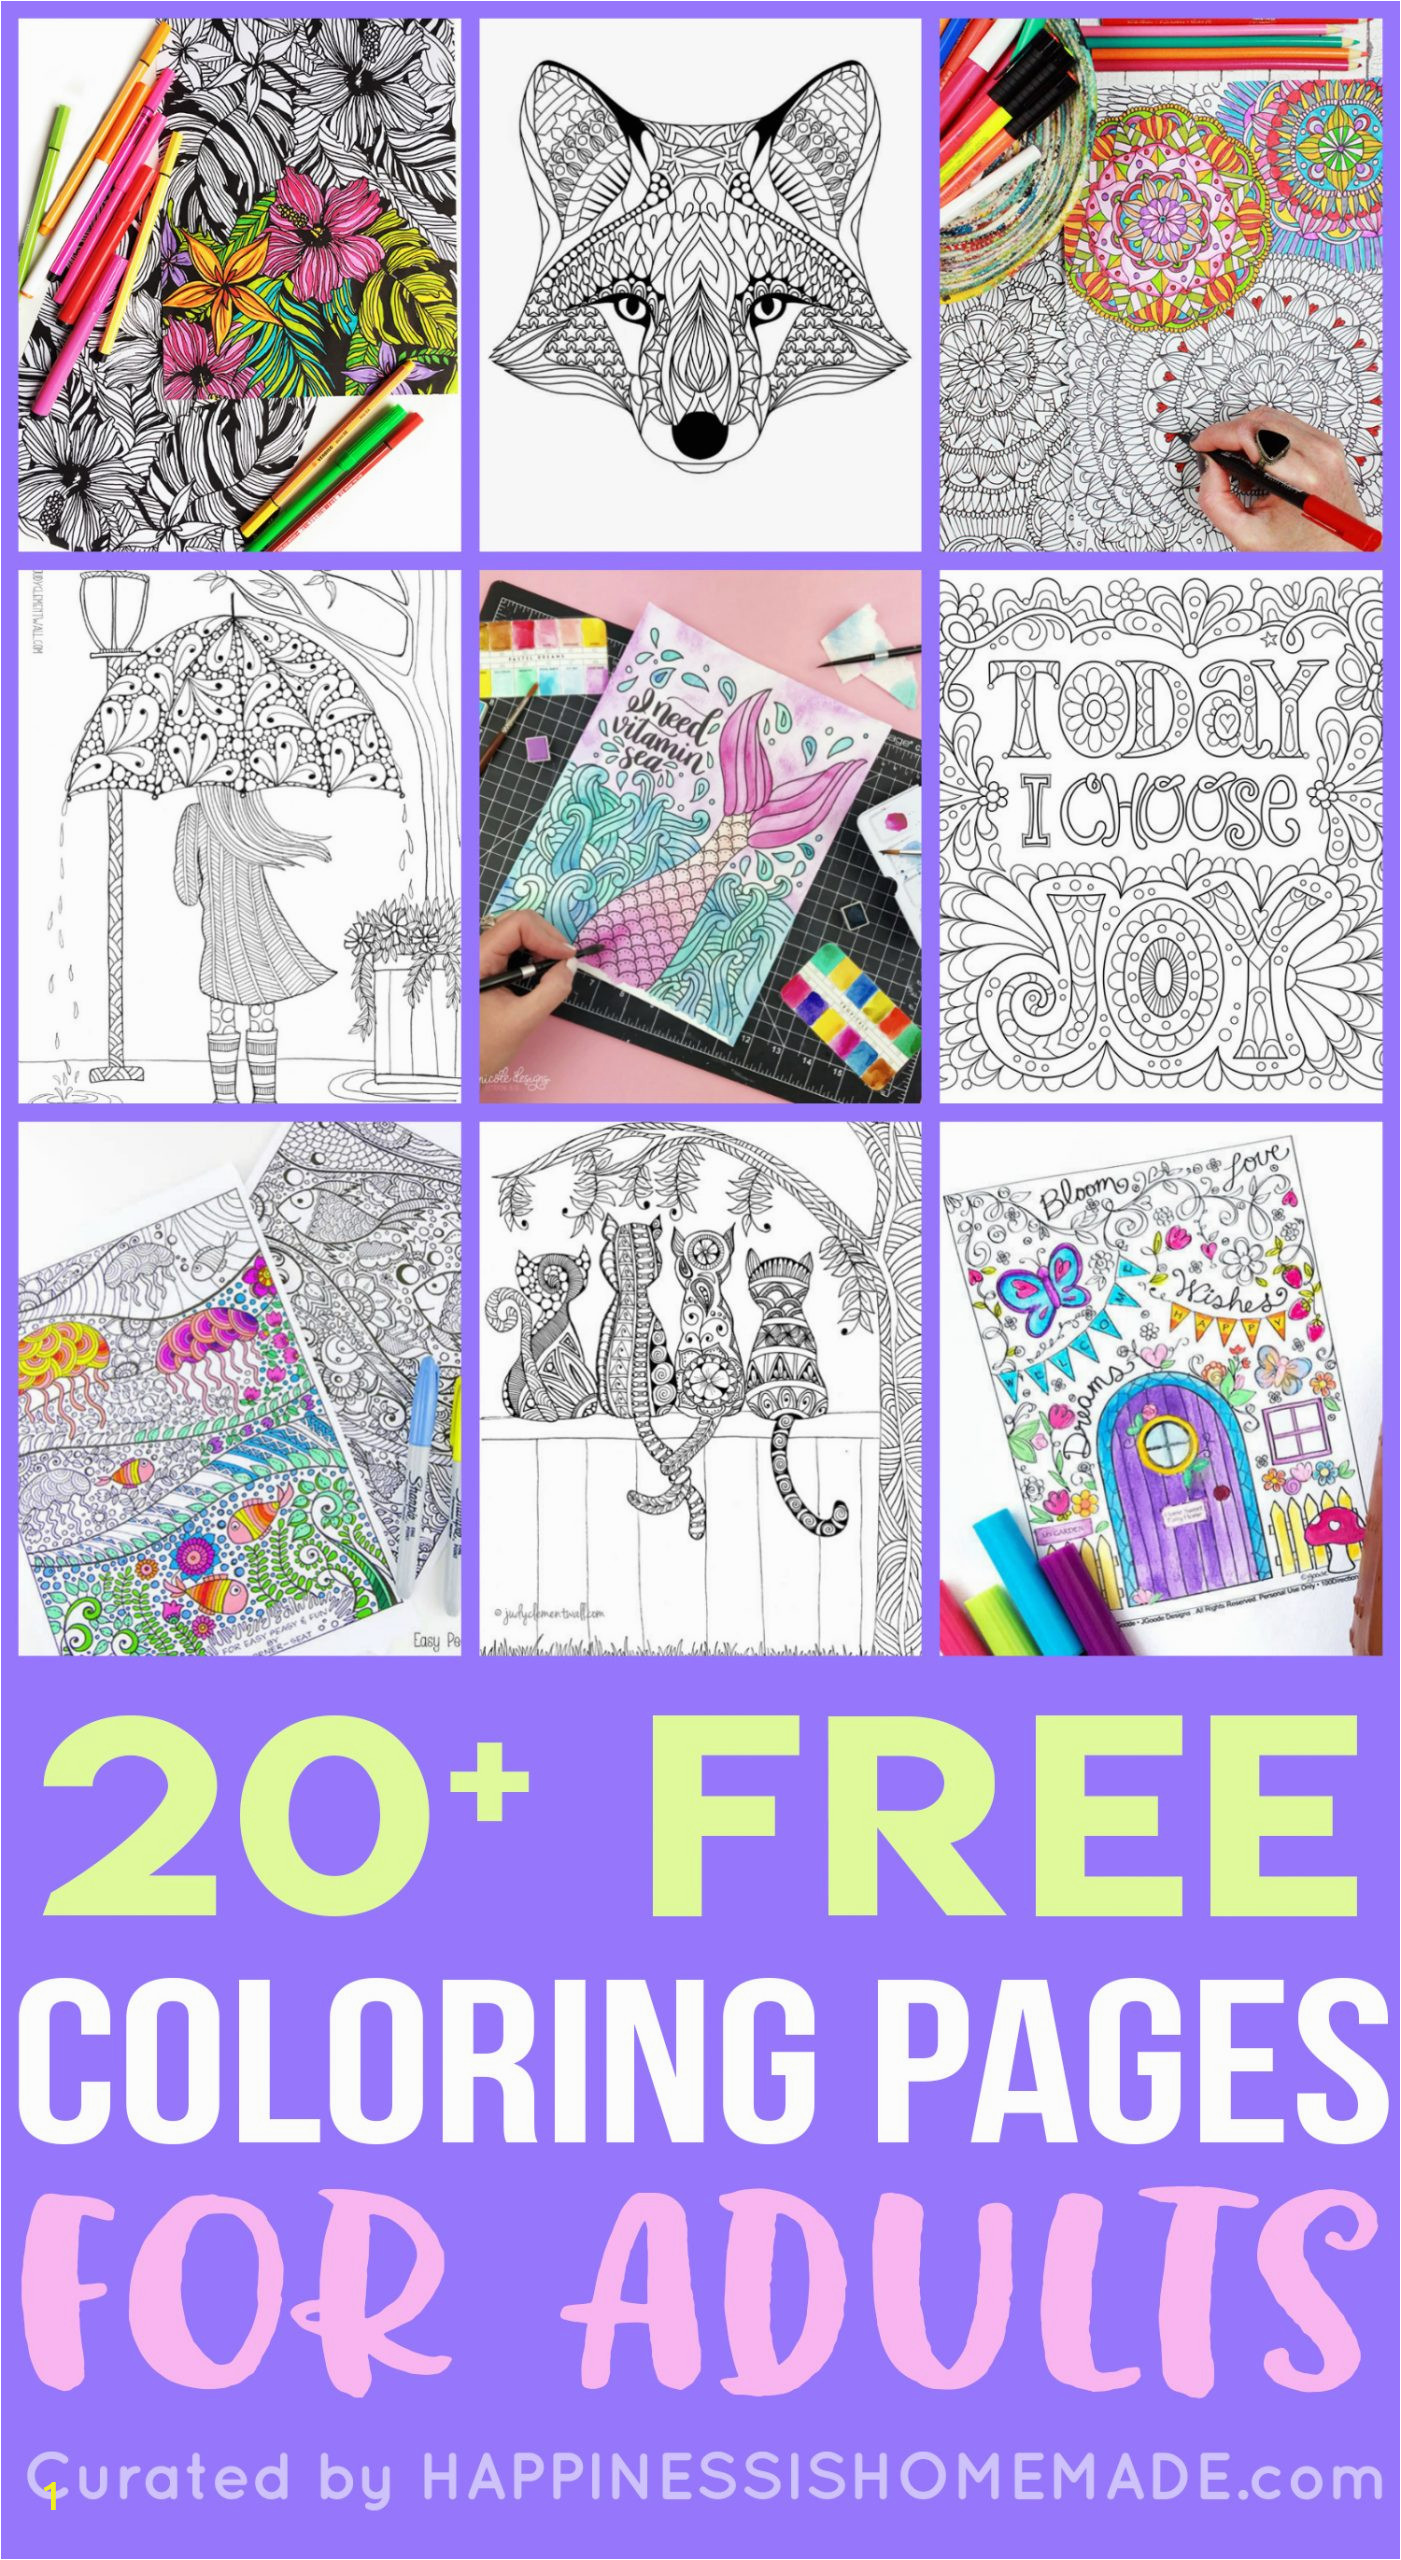 adult coloring pages for kids stress relief mandala batman and robin mustang disney channel balloon reducing printable sheets girls harry potter magical creatures colouring book kitten scaled